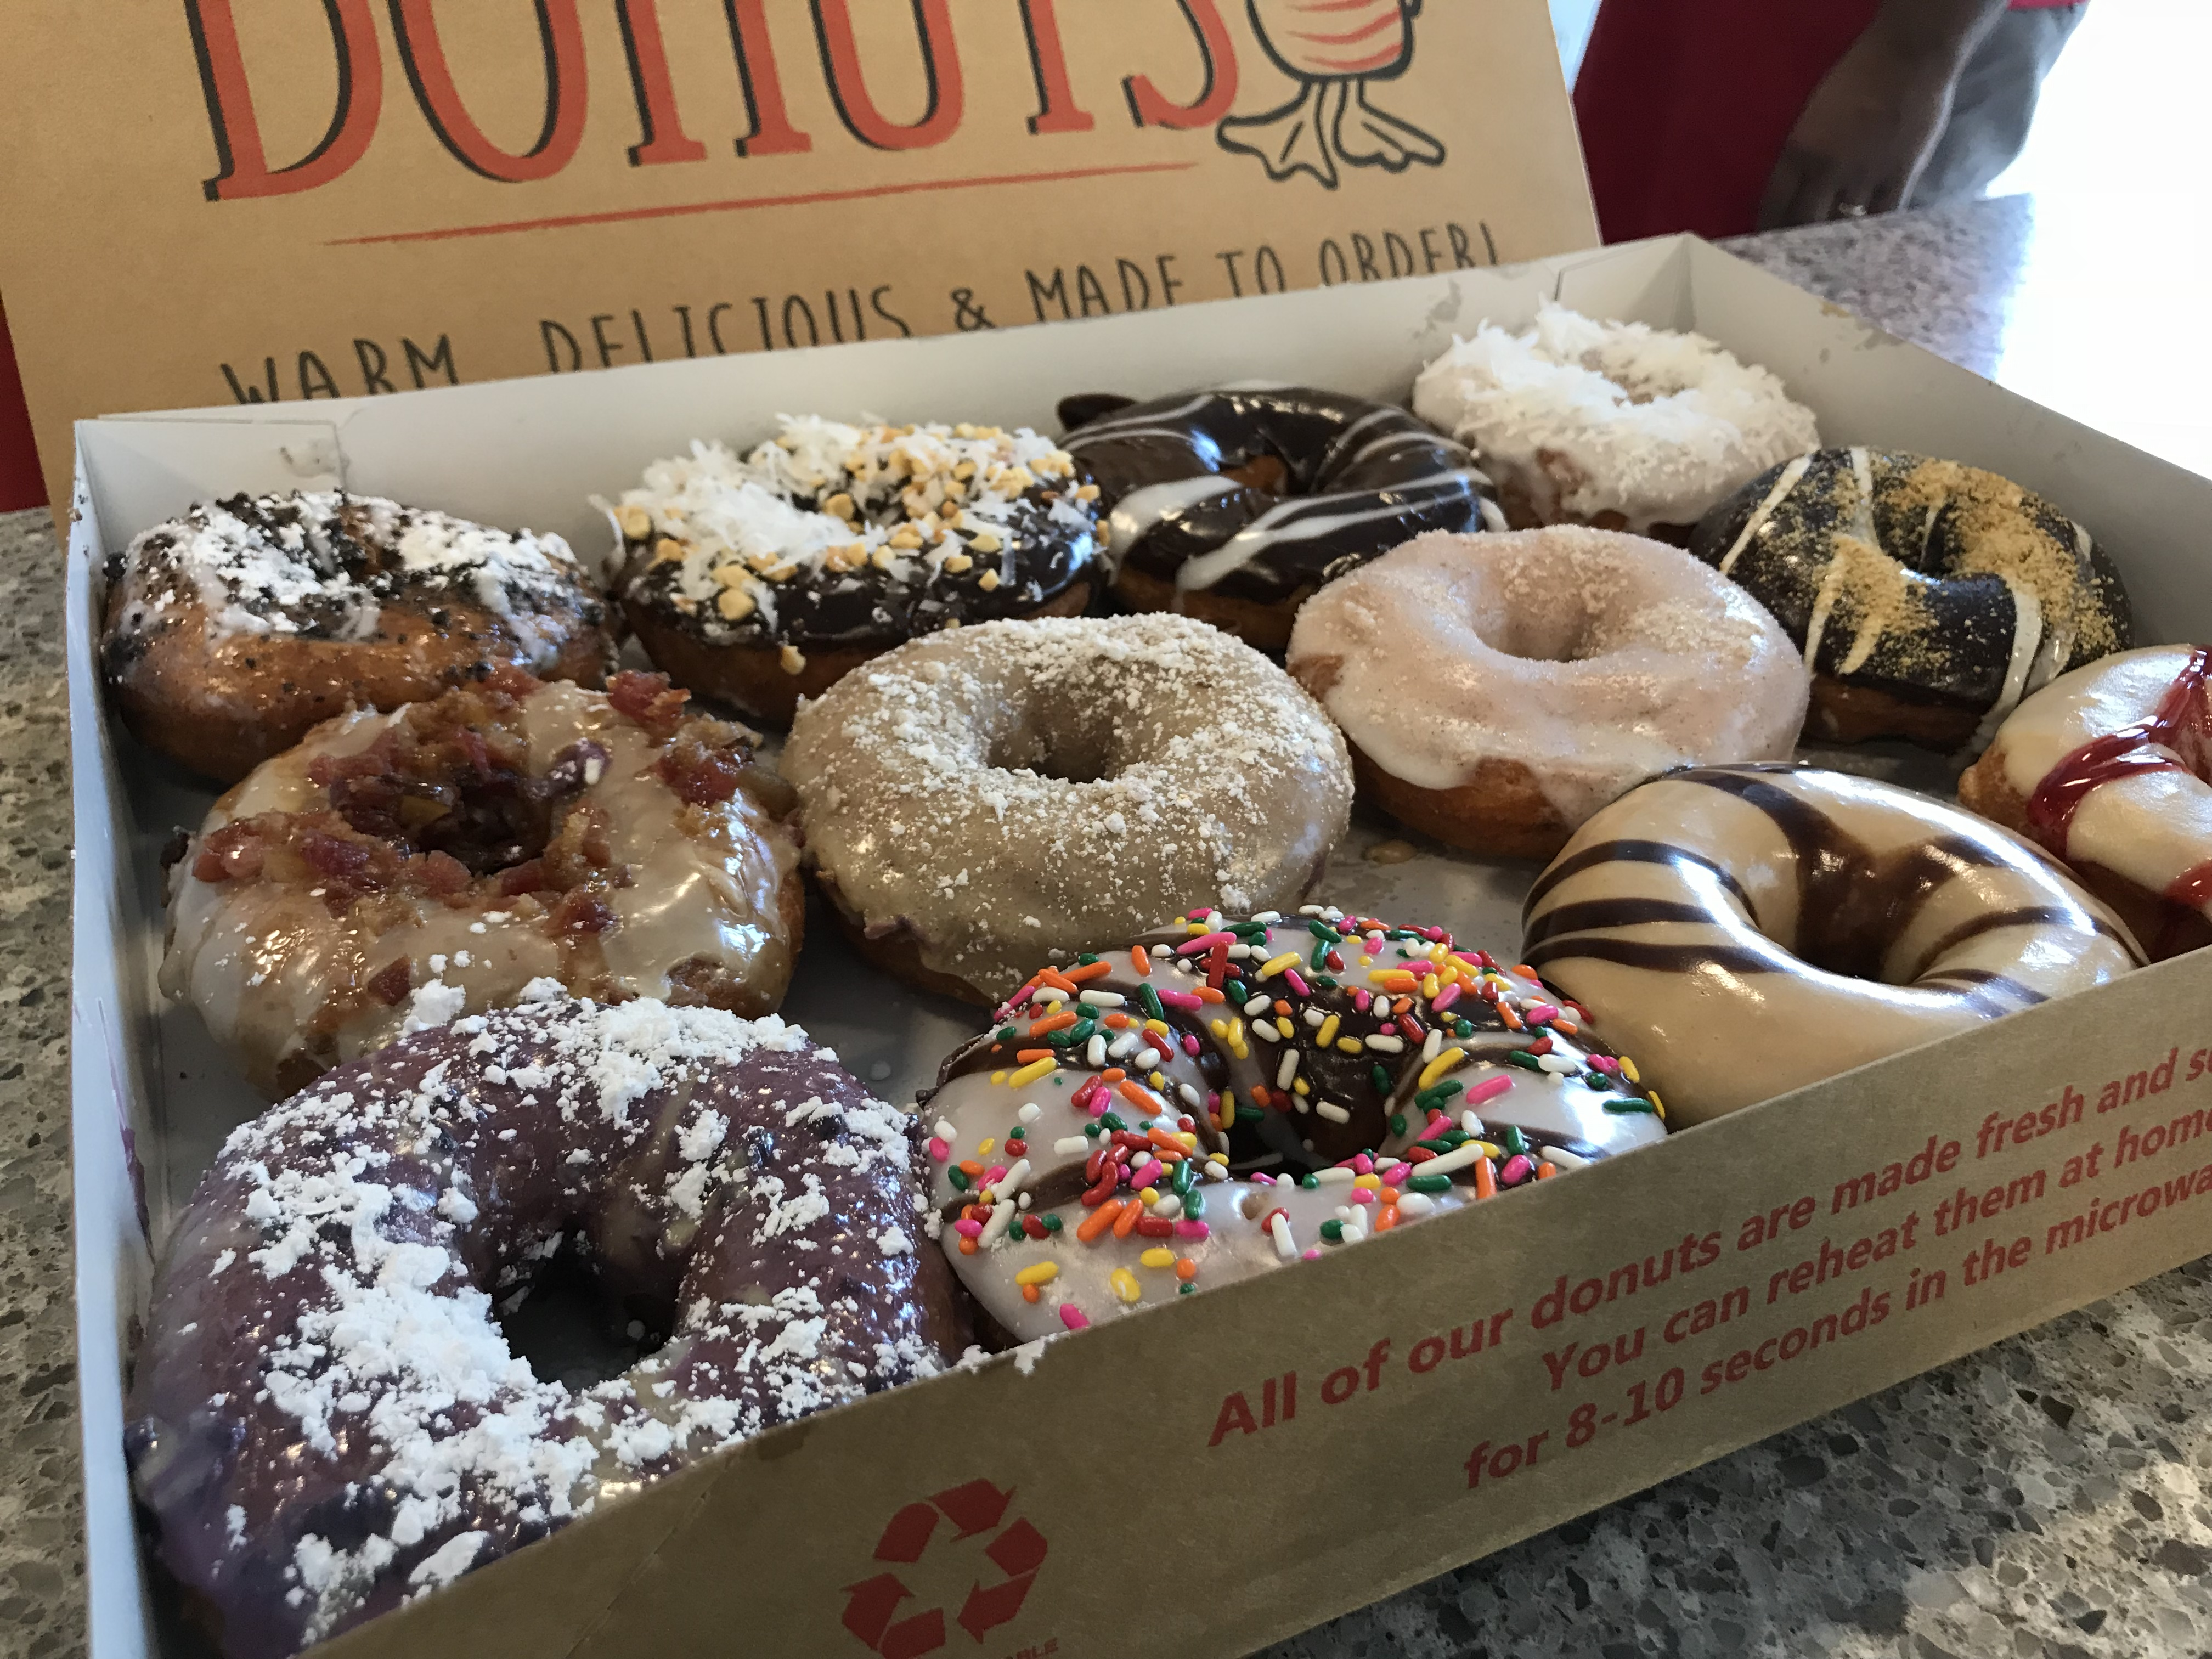 Duck Donuts Is A Hole In One The Emory Wheel